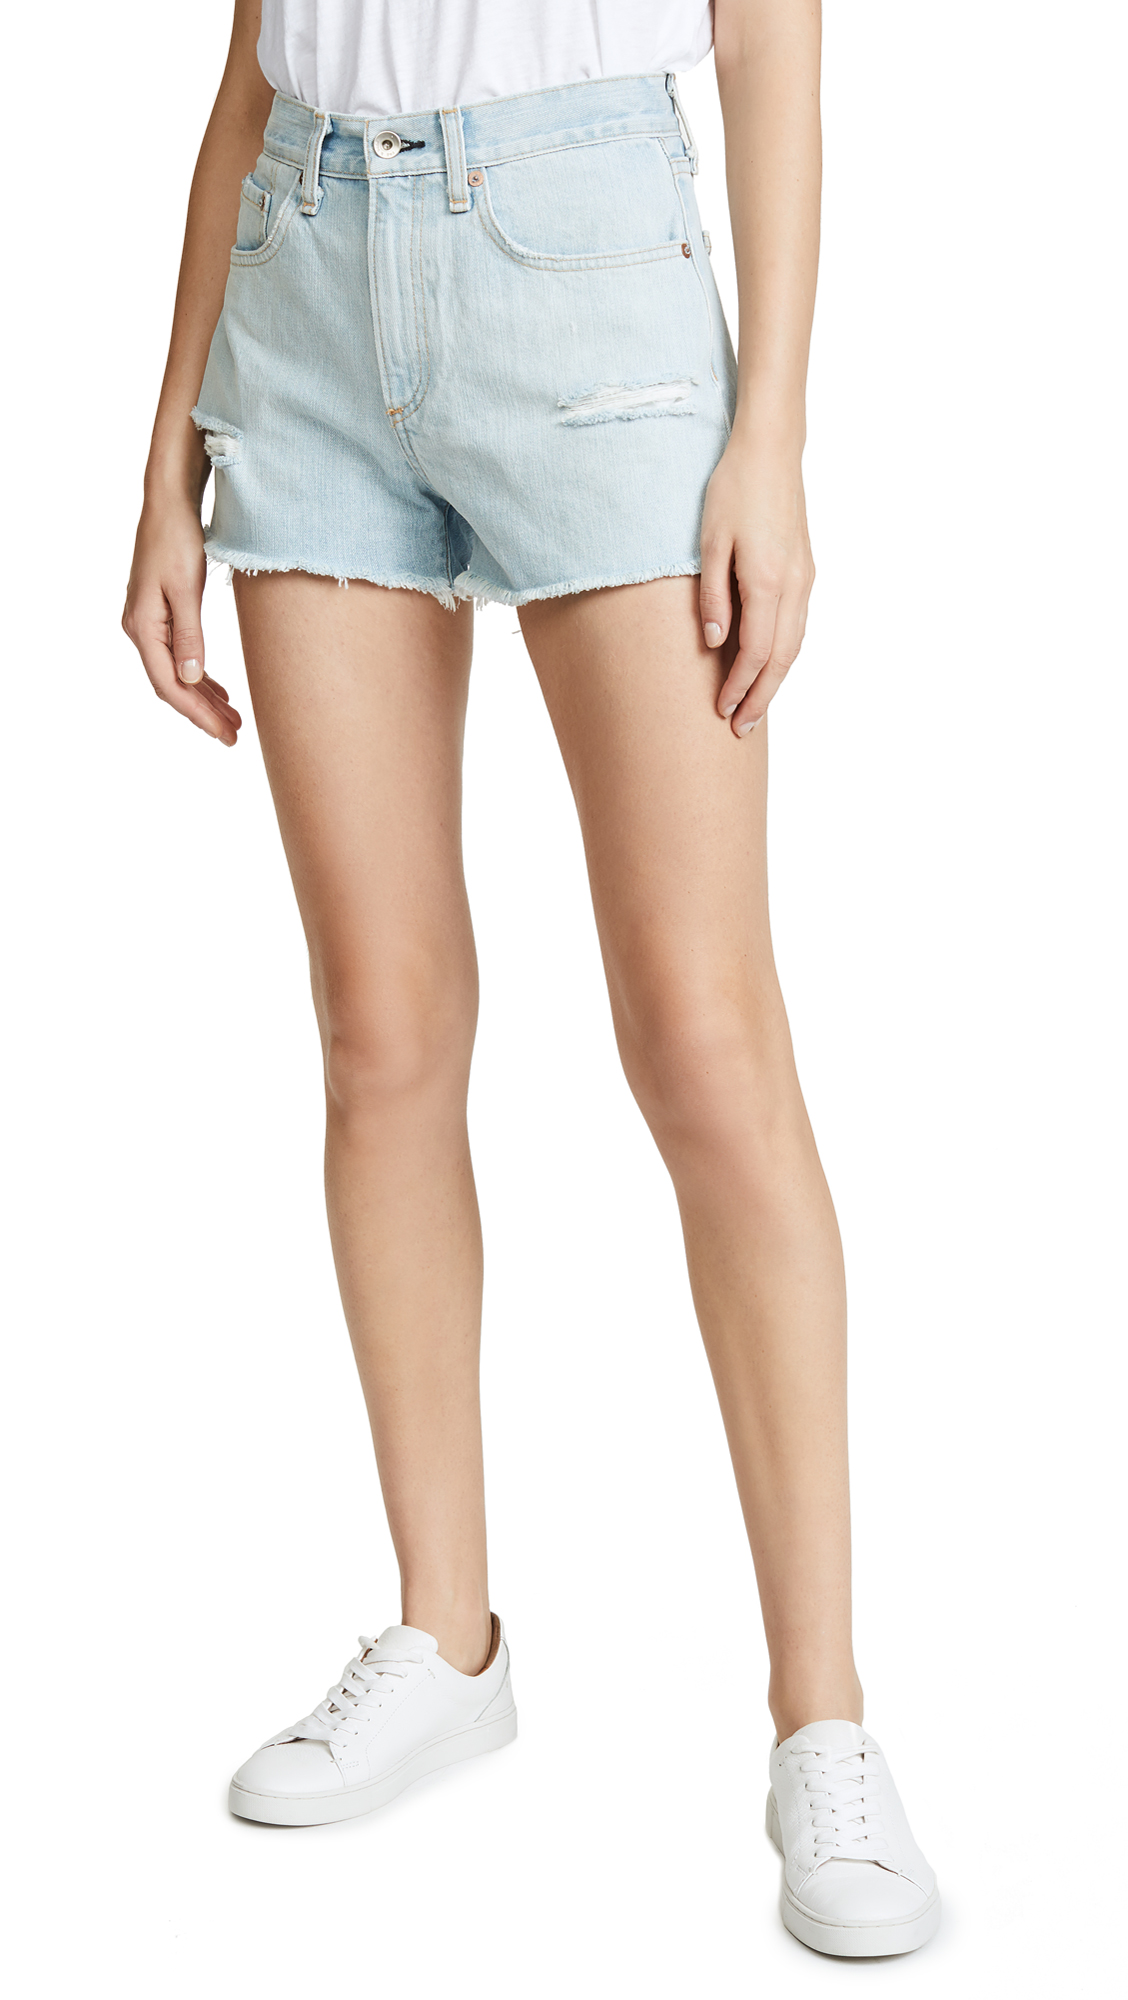 Rag & Bone/JEAN Justine High Rise Shorts In Glena With Holes